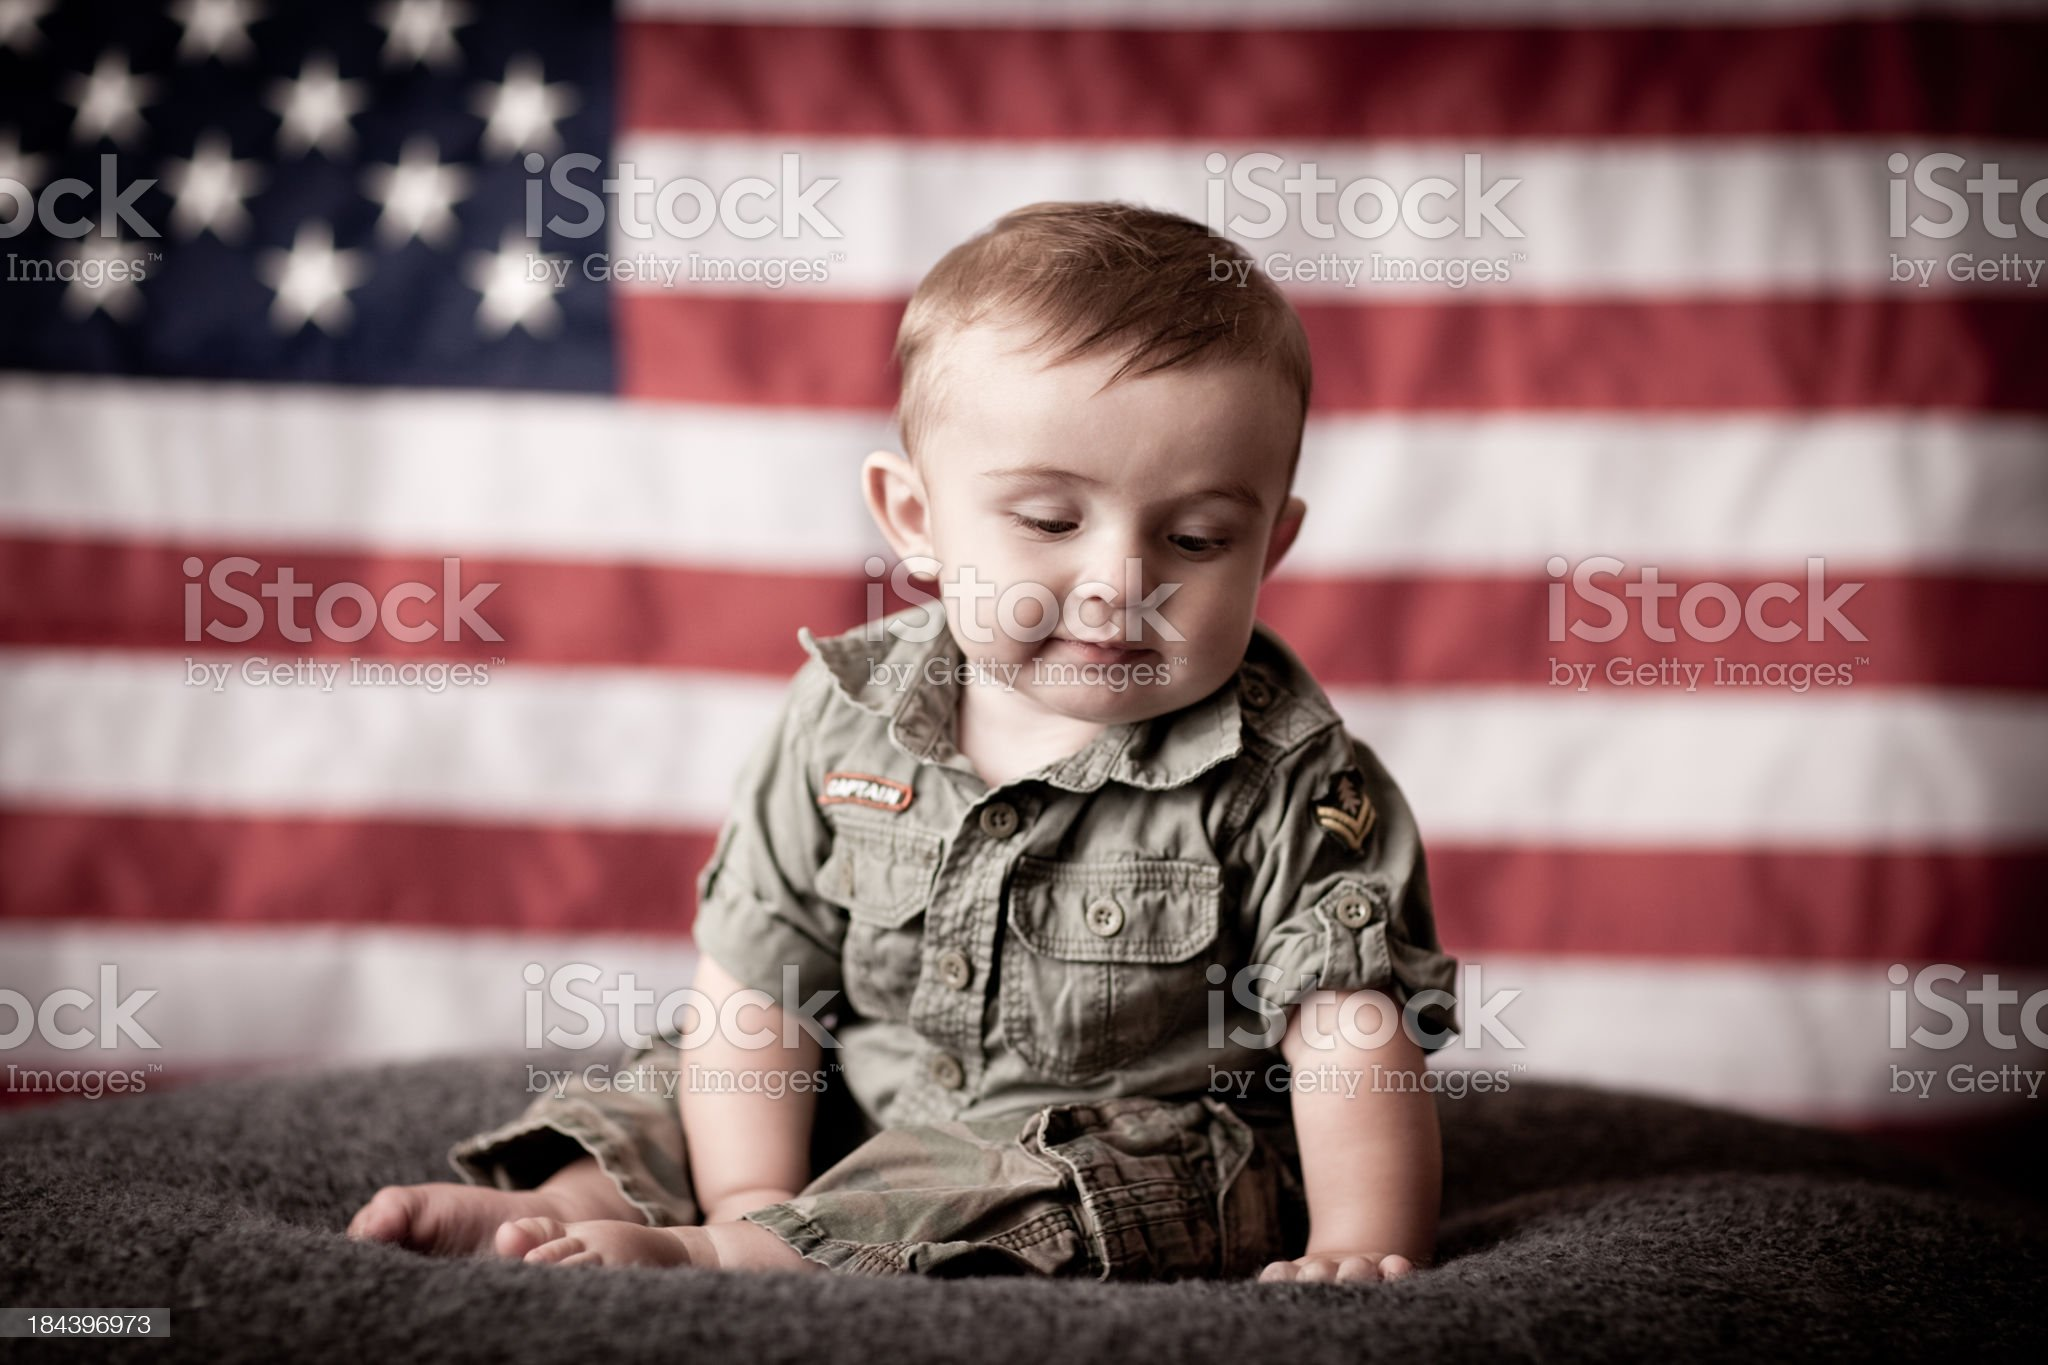 Pensive Military Baby Child Sitting by American Flag While Thinking royalty-free stock photo